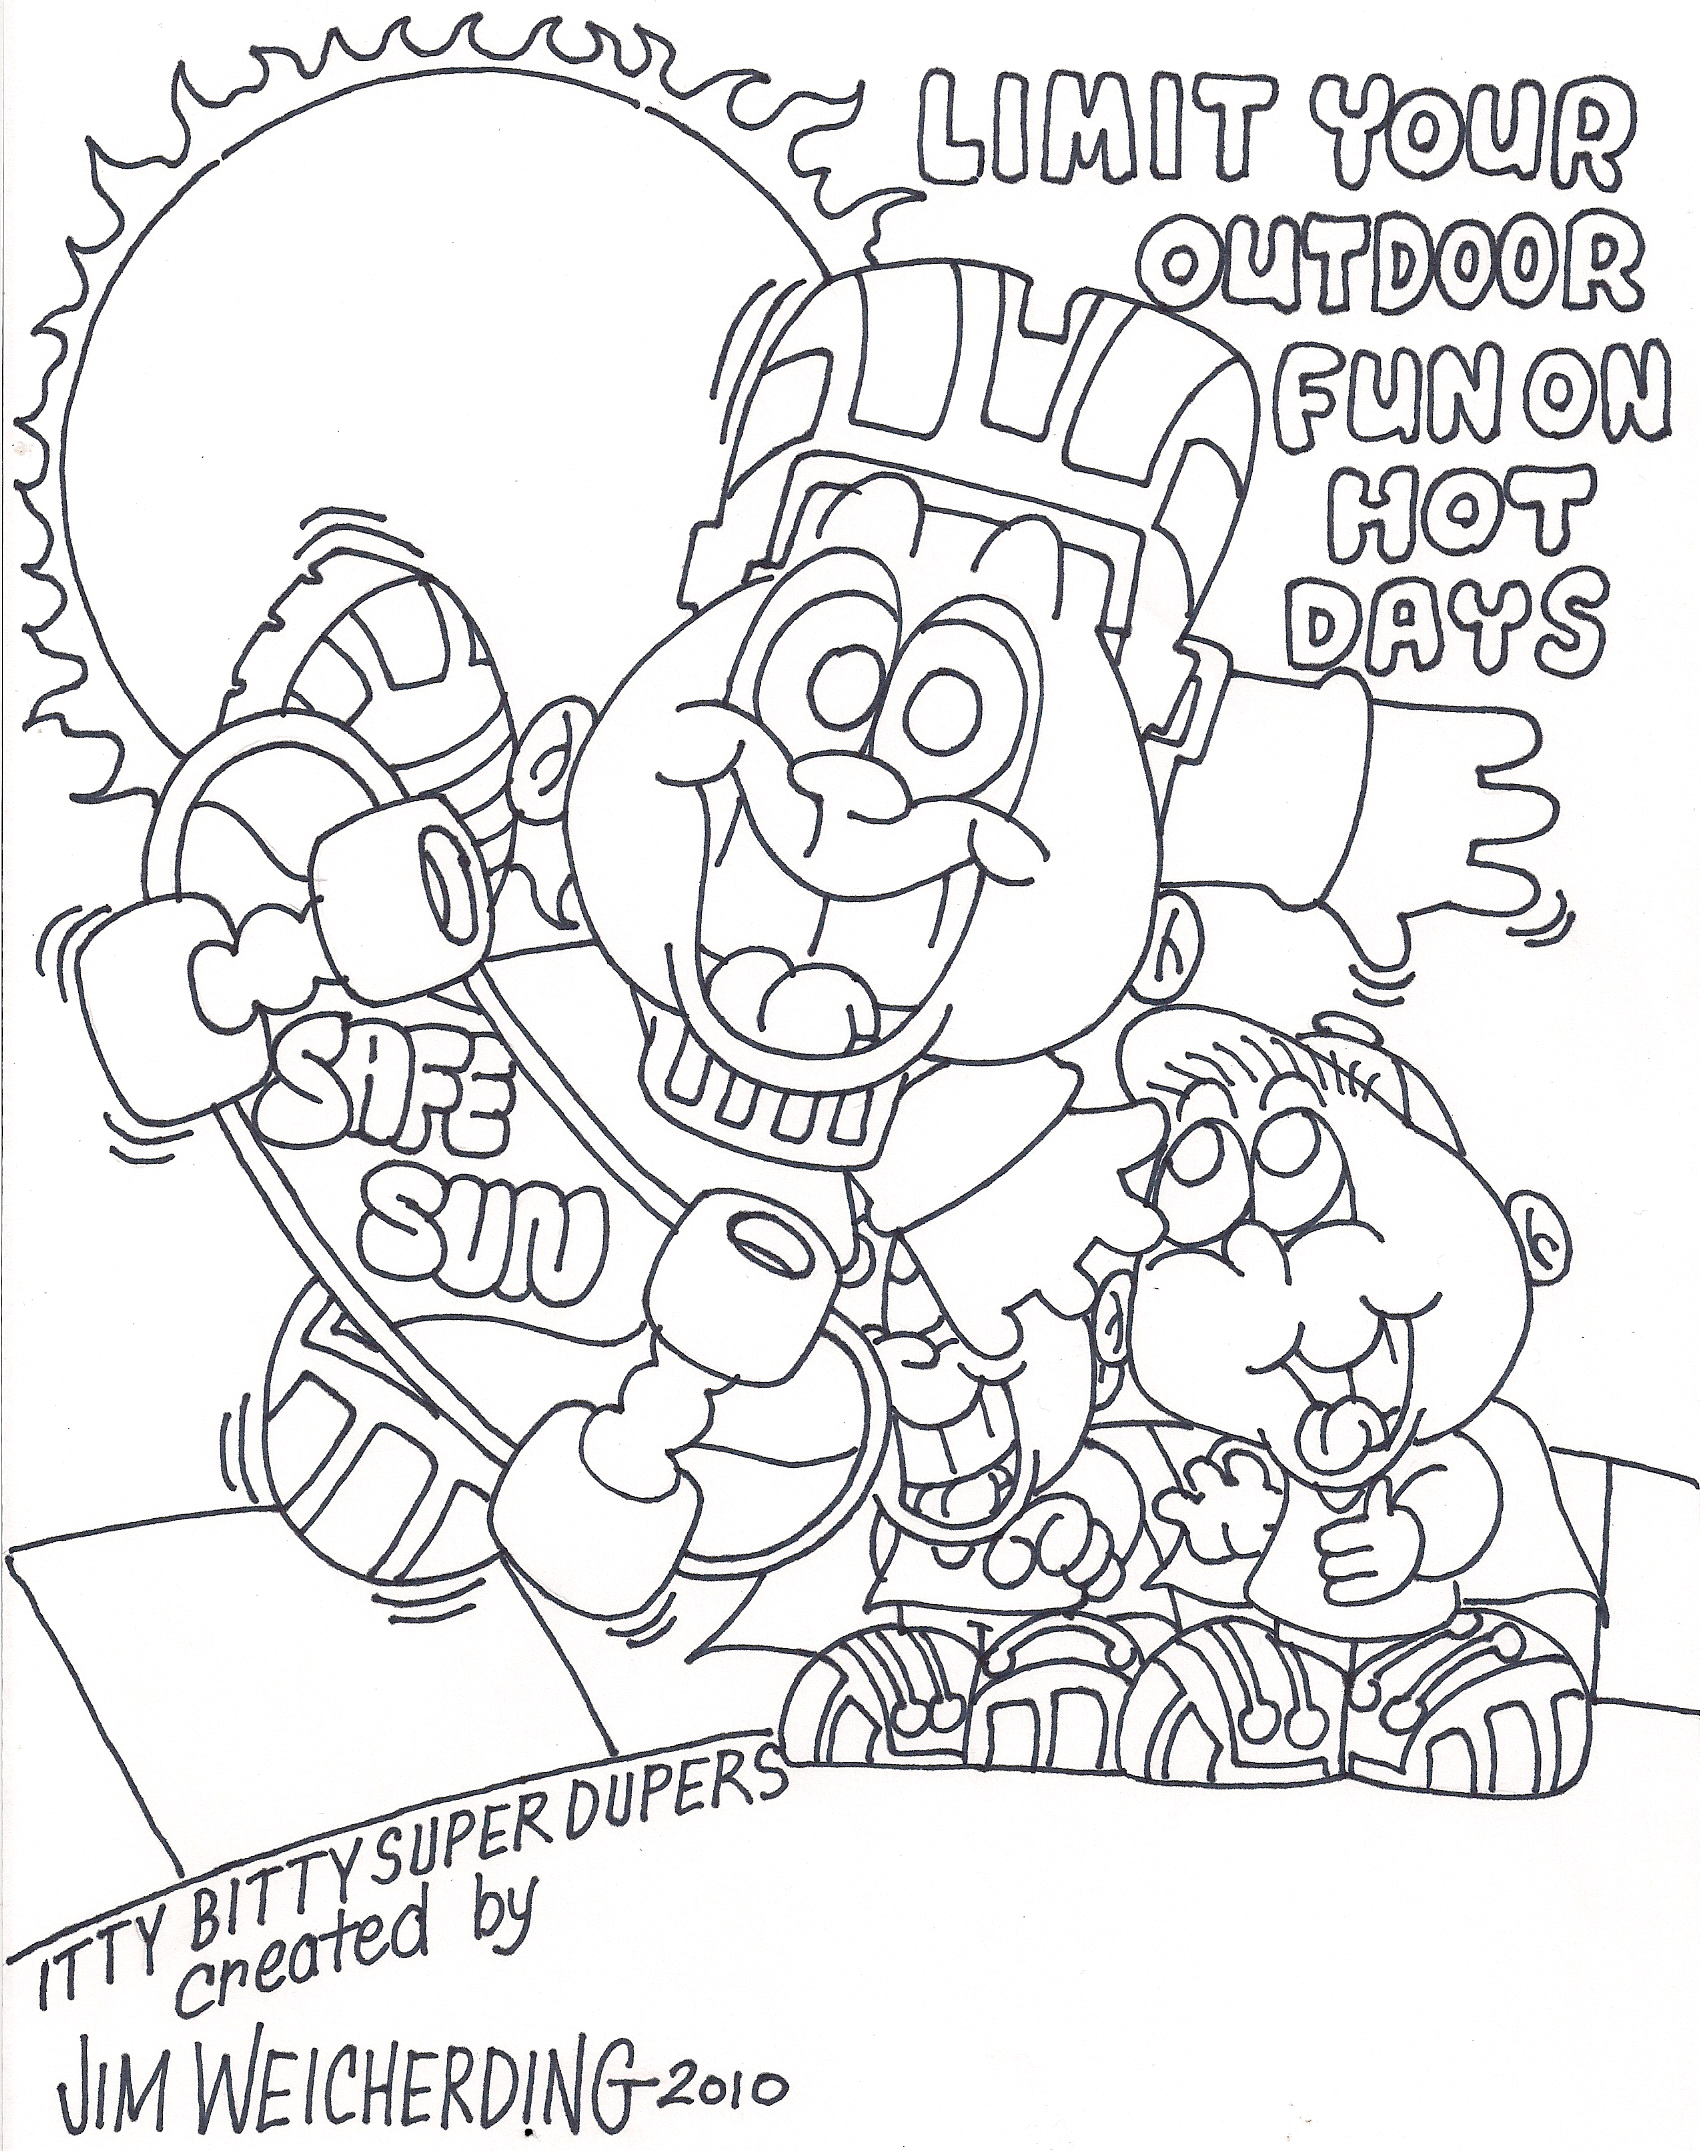 Sun Safety Coloring Pages Az Coloring Pages Sun Safety Coloring Pages